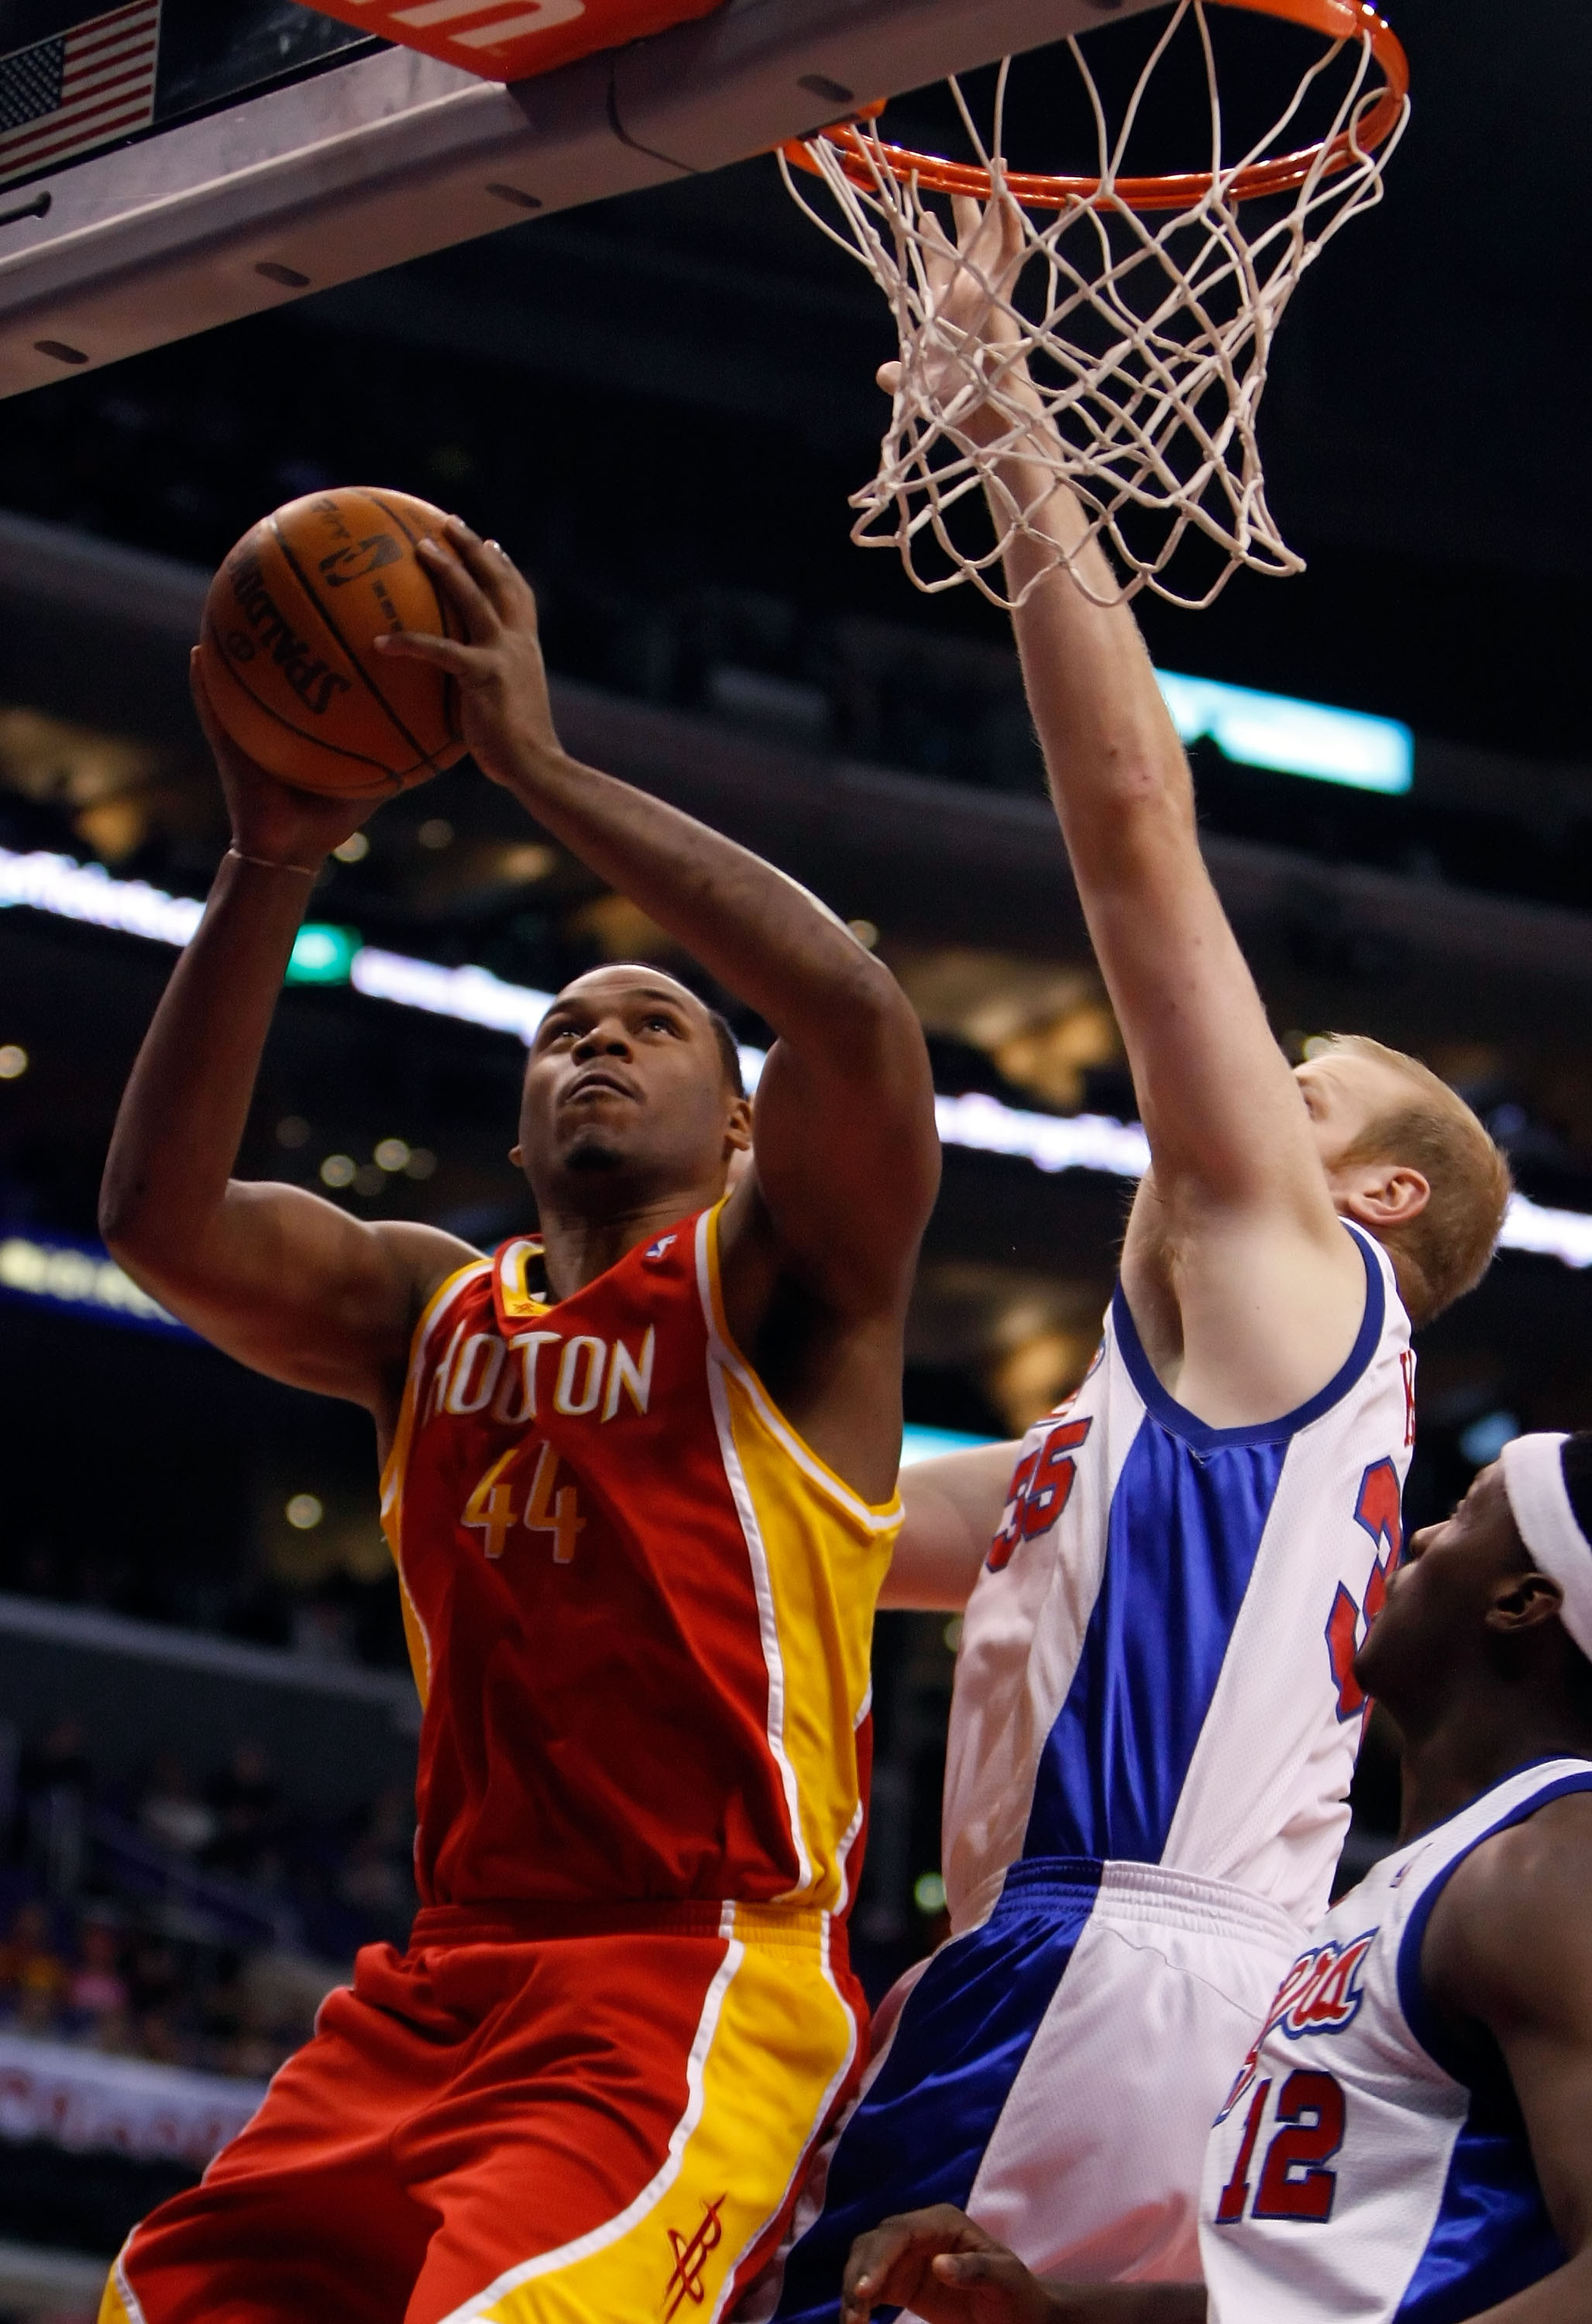 LOS ANGELES, CA - DECEMBER 02:  Chuck Hayes #44 of the Houston Rockets drives to the basket while being defended by Chris Kaman #35 of the Los Angeles Clippers in the first half at Staples Center on December 2, 2009 in Los Angeles, California. NOTE TO USE